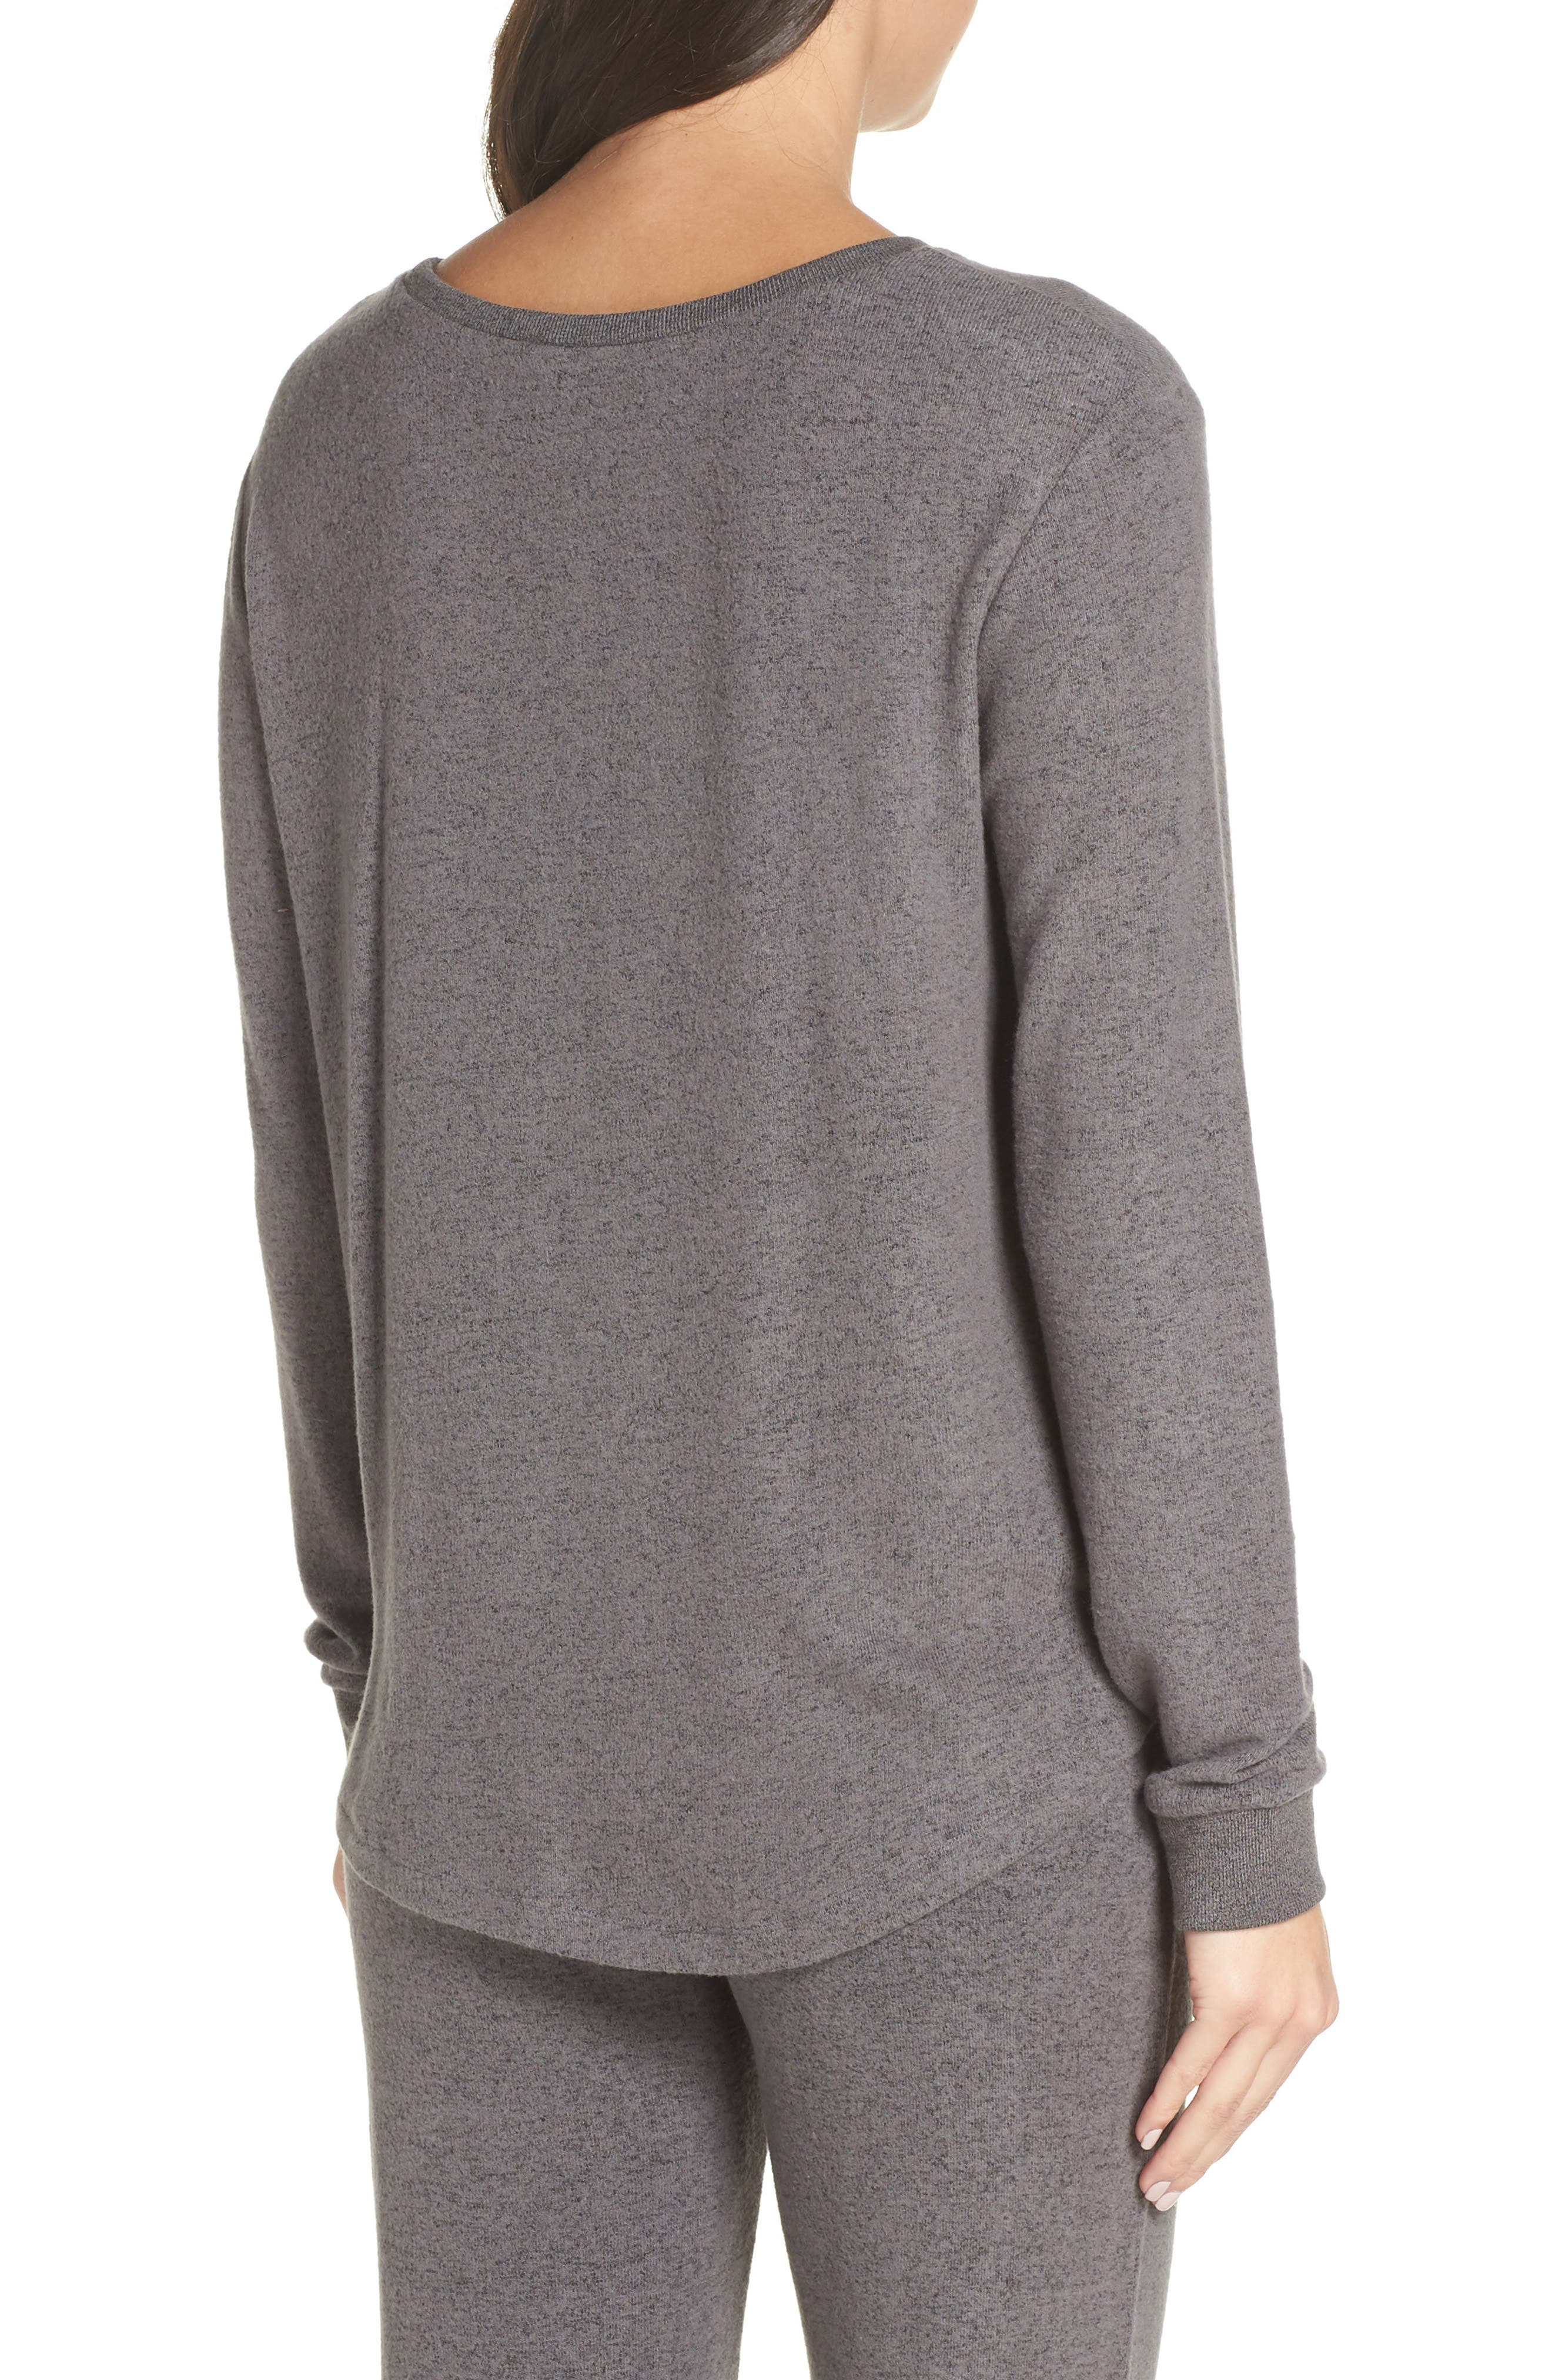 Too Cool Pullover,                             Alternate thumbnail 2, color,                             GREY PAVEMENT MARL